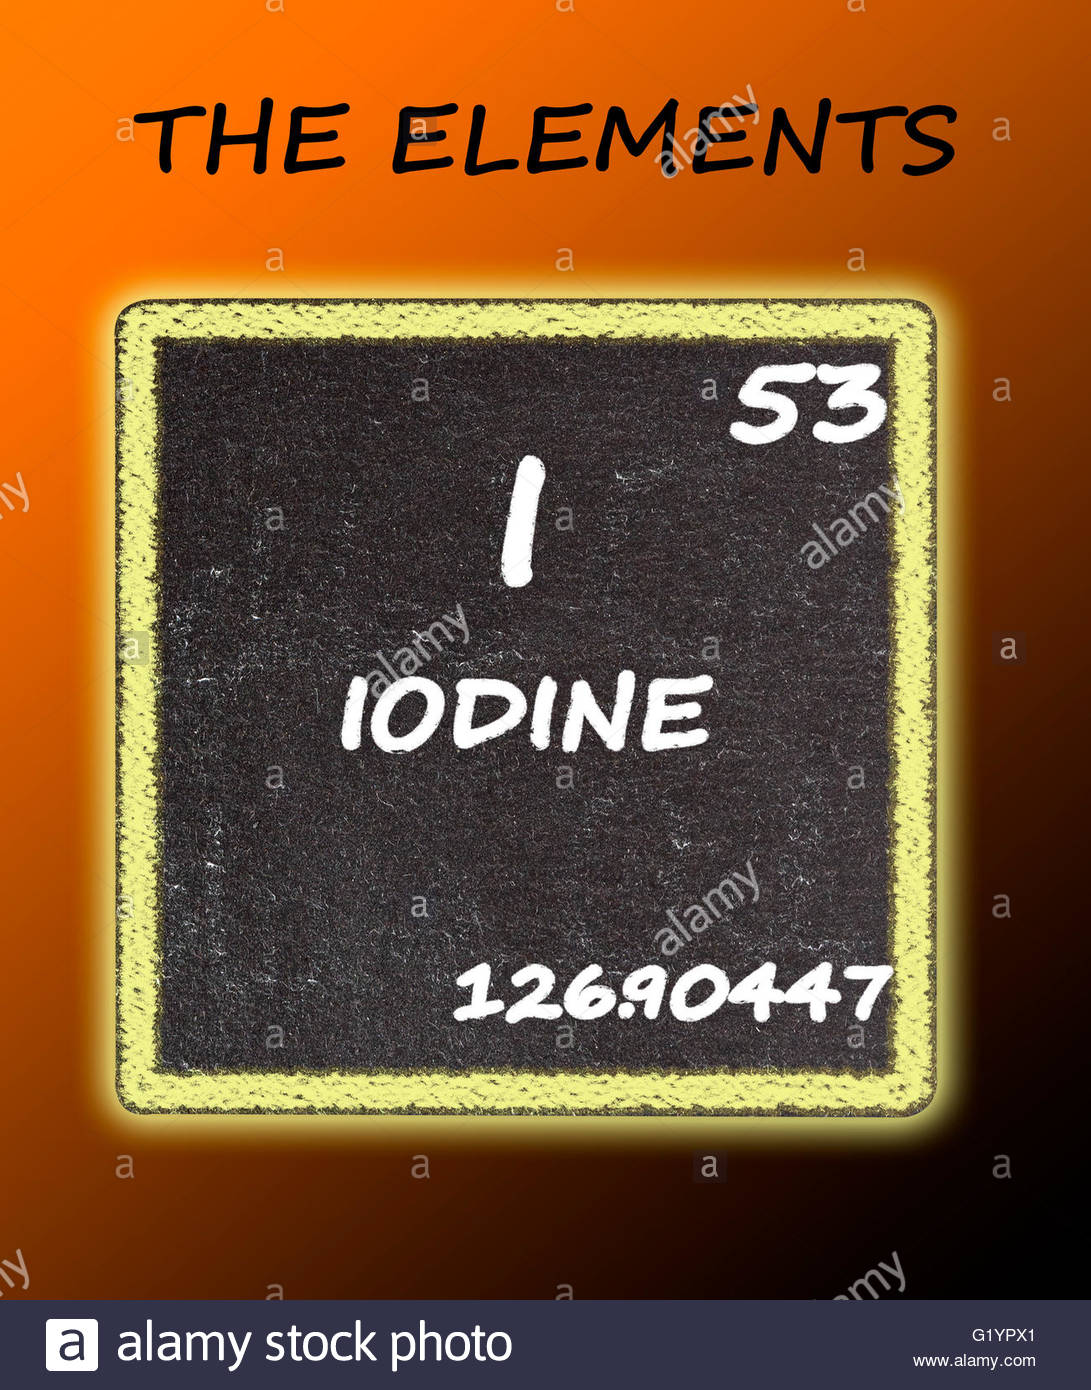 Iodine details from the periodic table stock photo royalty free iodine details from the periodic table gamestrikefo Choice Image